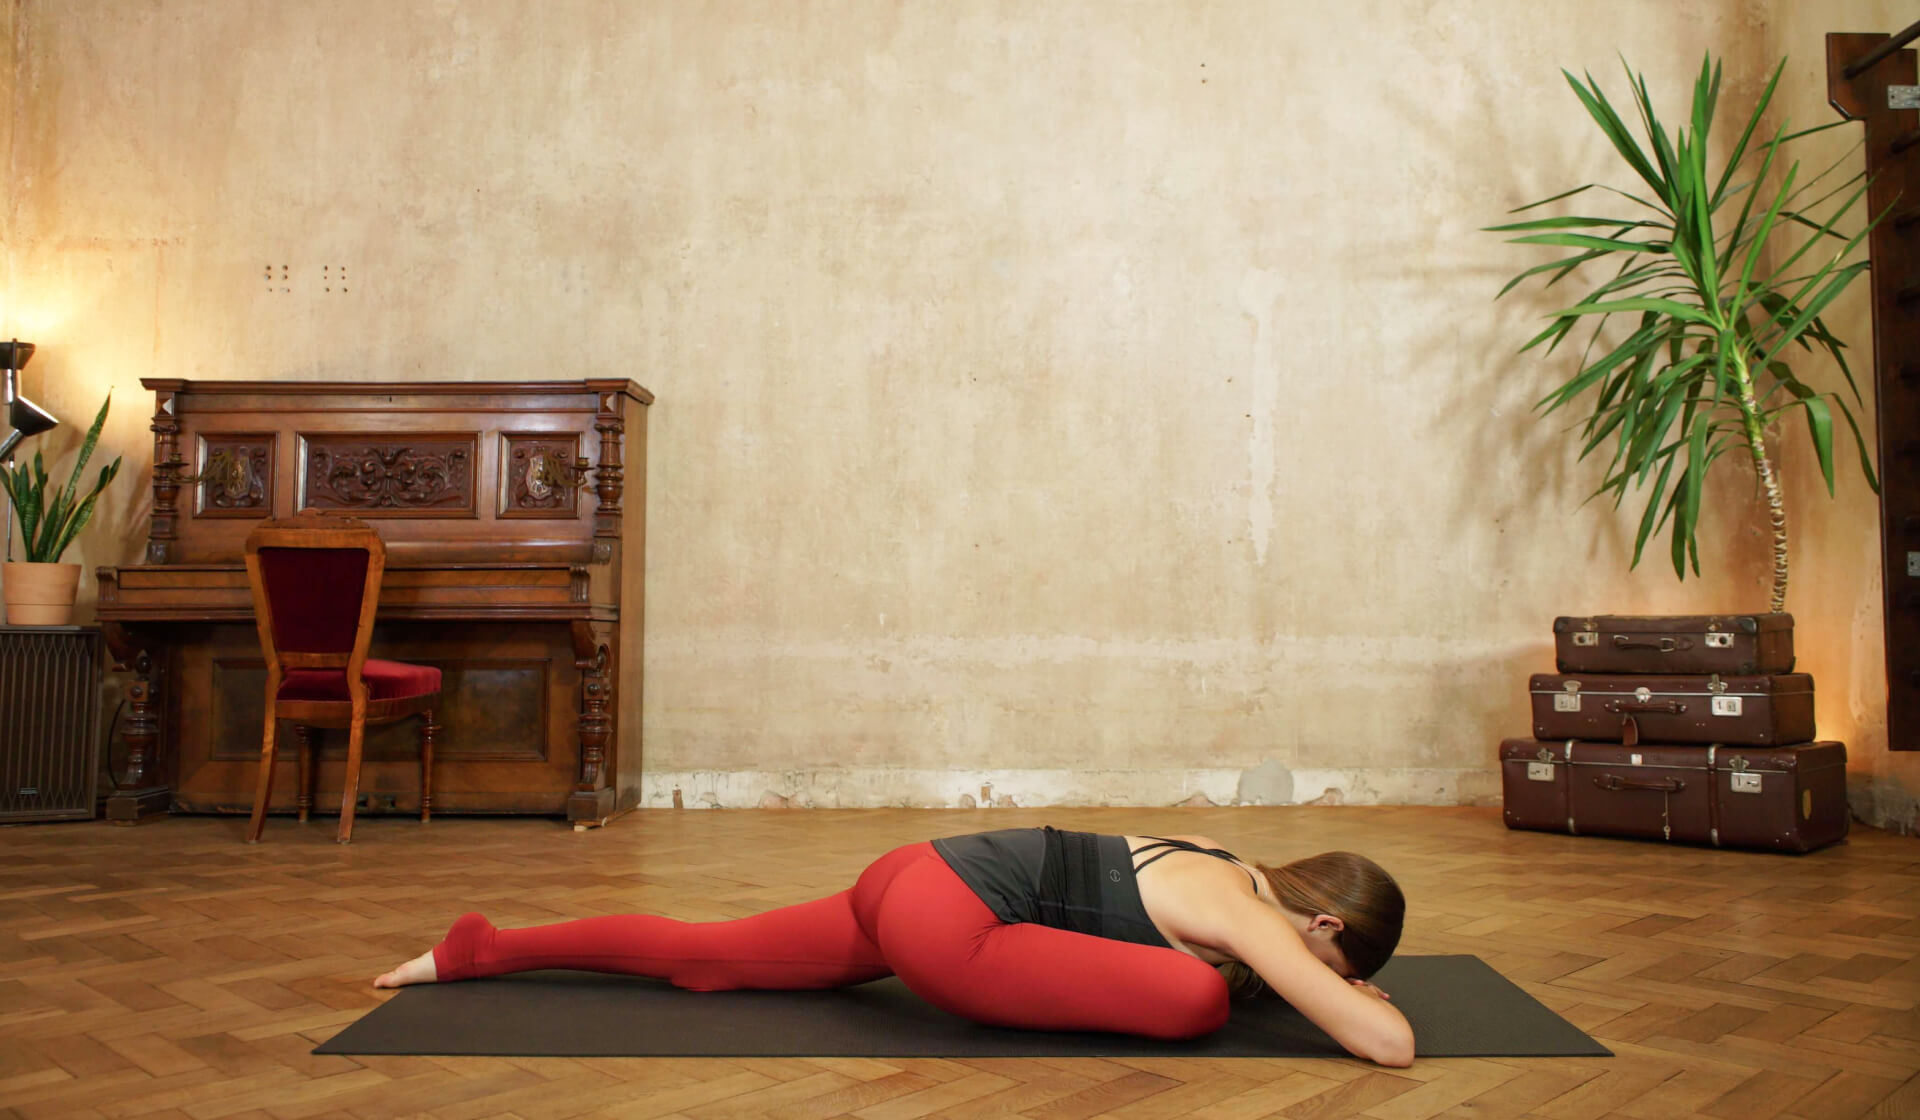 Yoga teacher in black tank top and red yoga pants folding forward into pigeon pose on a black yoga mat in front of a piano, beige wall, stack of suitcases, and green palm tree